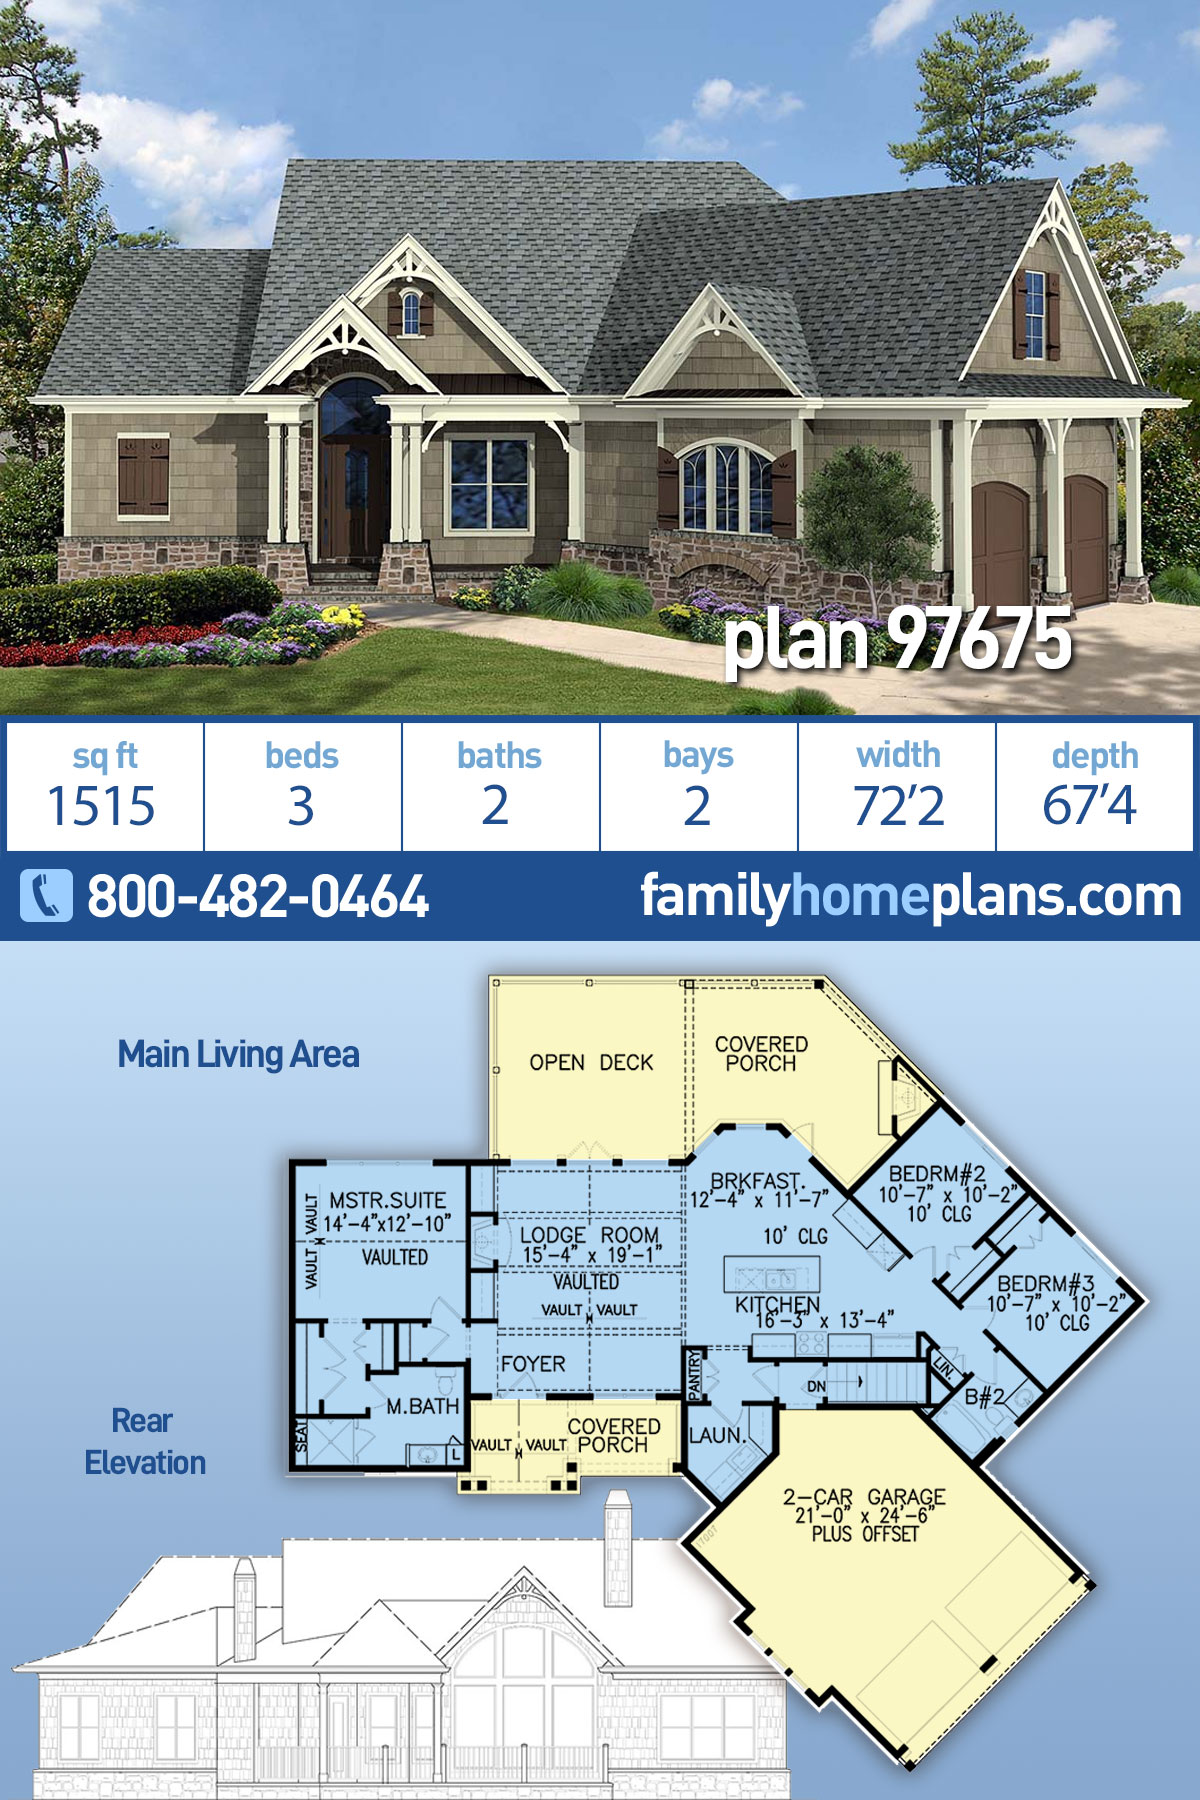 Craftsman, One-Story, Ranch House Plan 97675 with 3 Beds, 2 Baths, 2 Car Garage